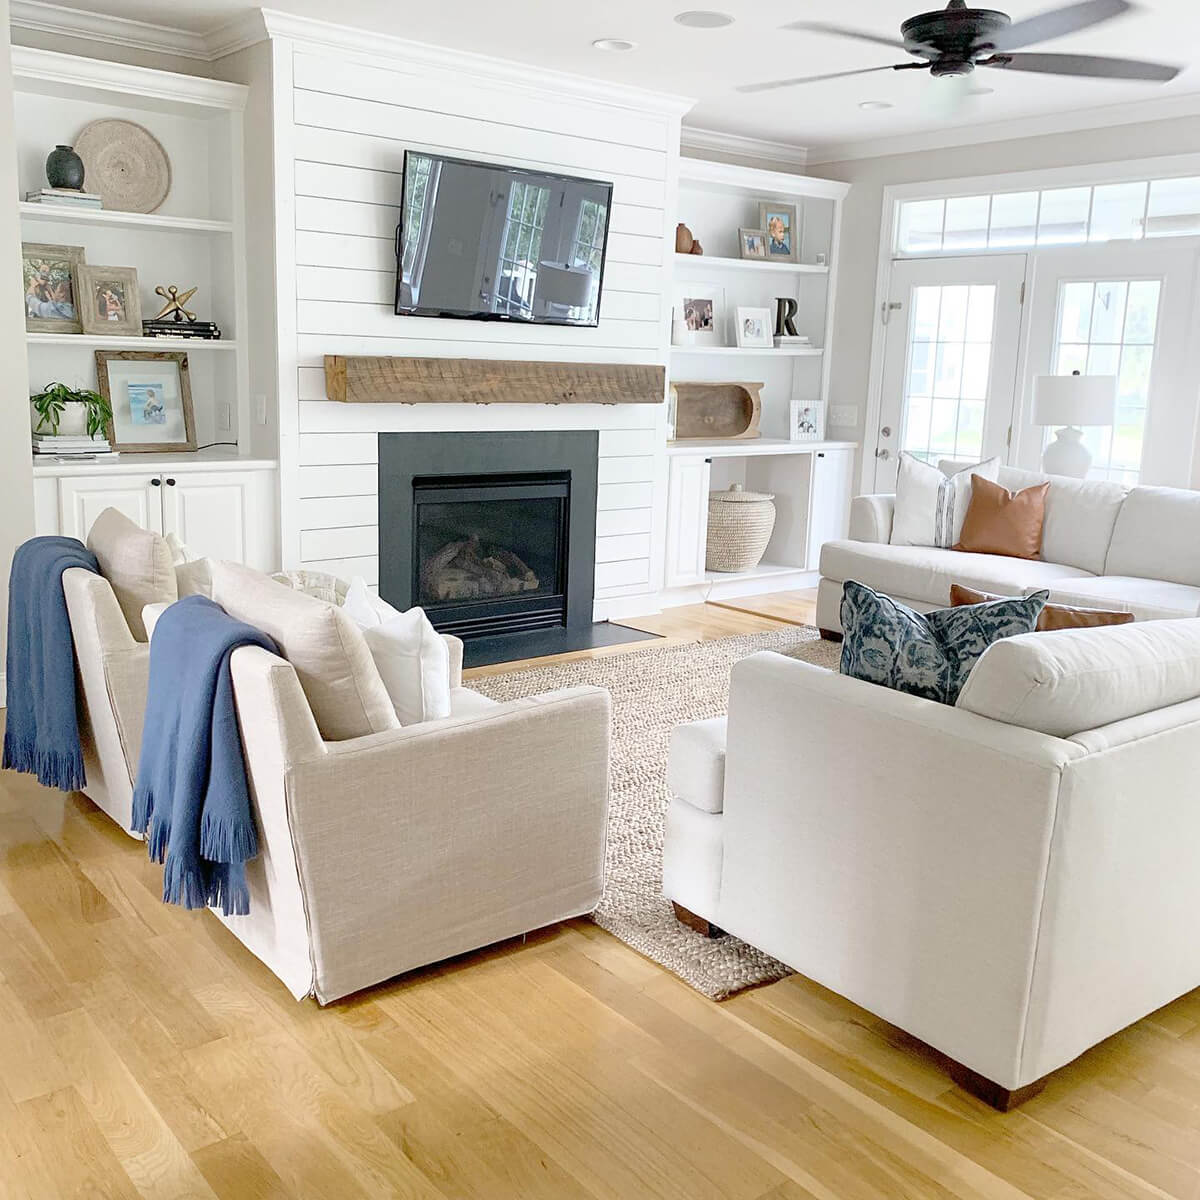 Sweet and Simple Shiplap Rustic Modern Fireplace